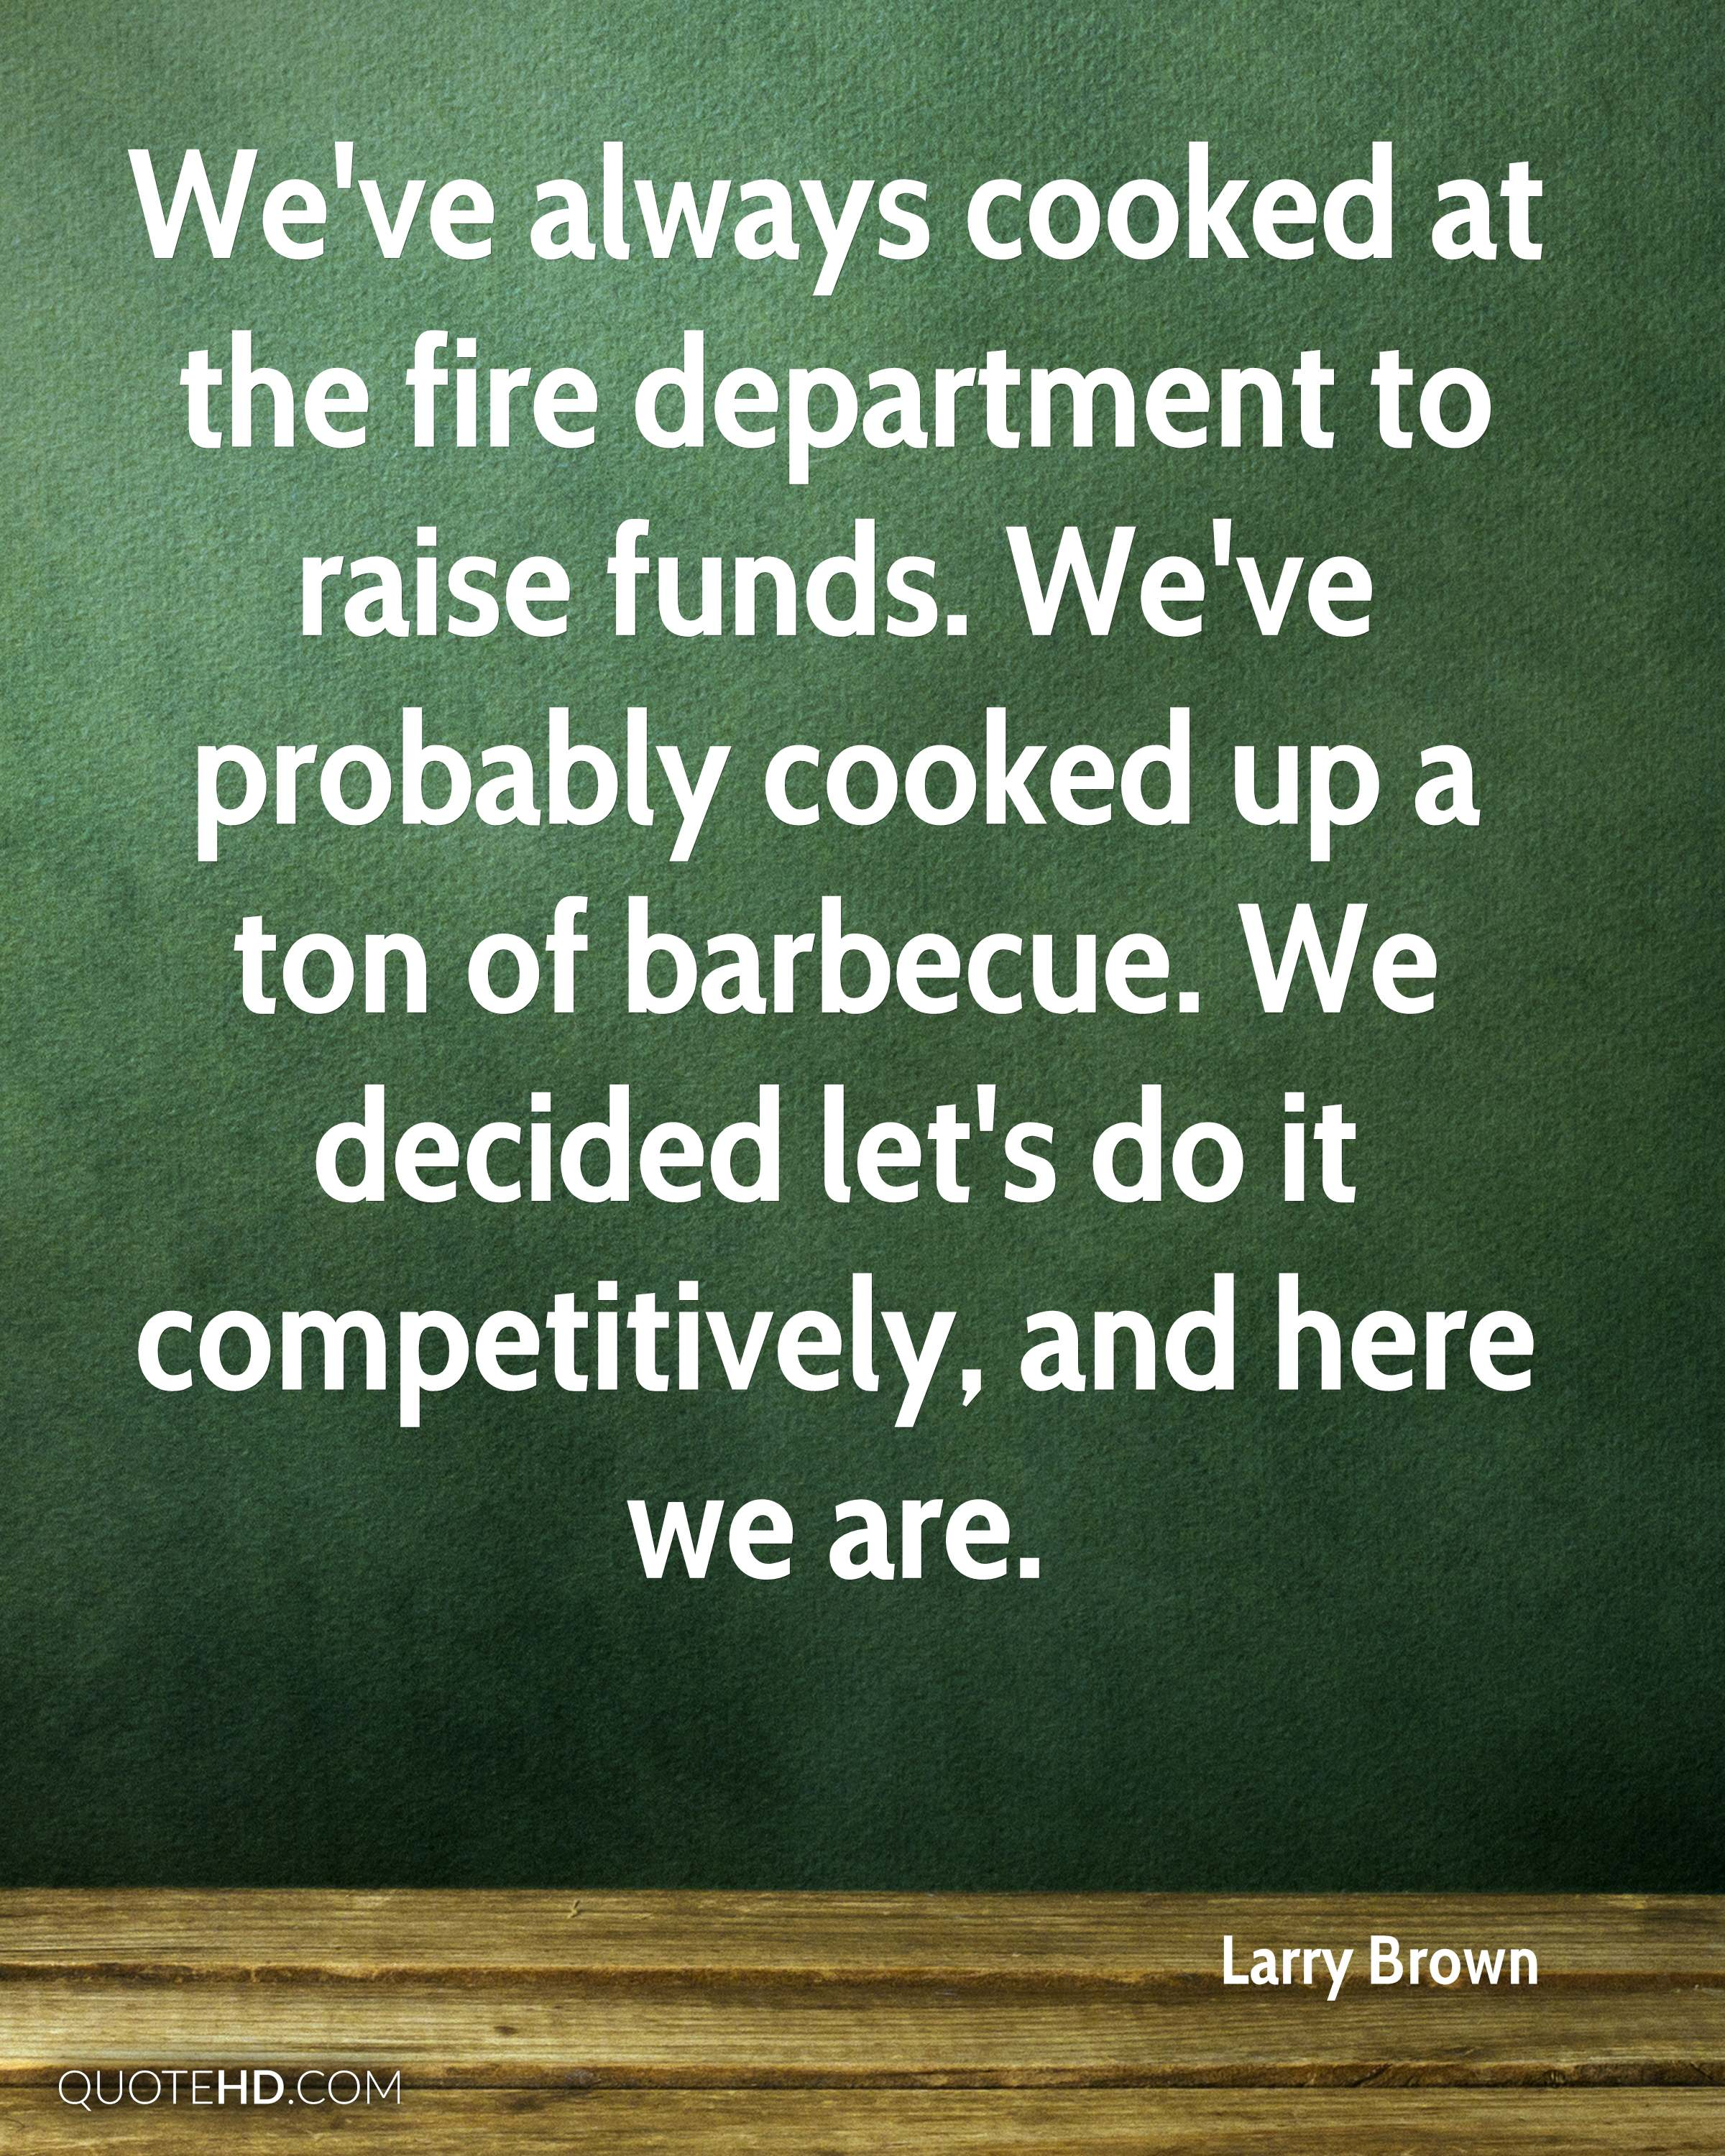 We've always cooked at the fire department to raise funds. We've probably cooked up a ton of barbecue. We decided let's do it competitively, and here we are.